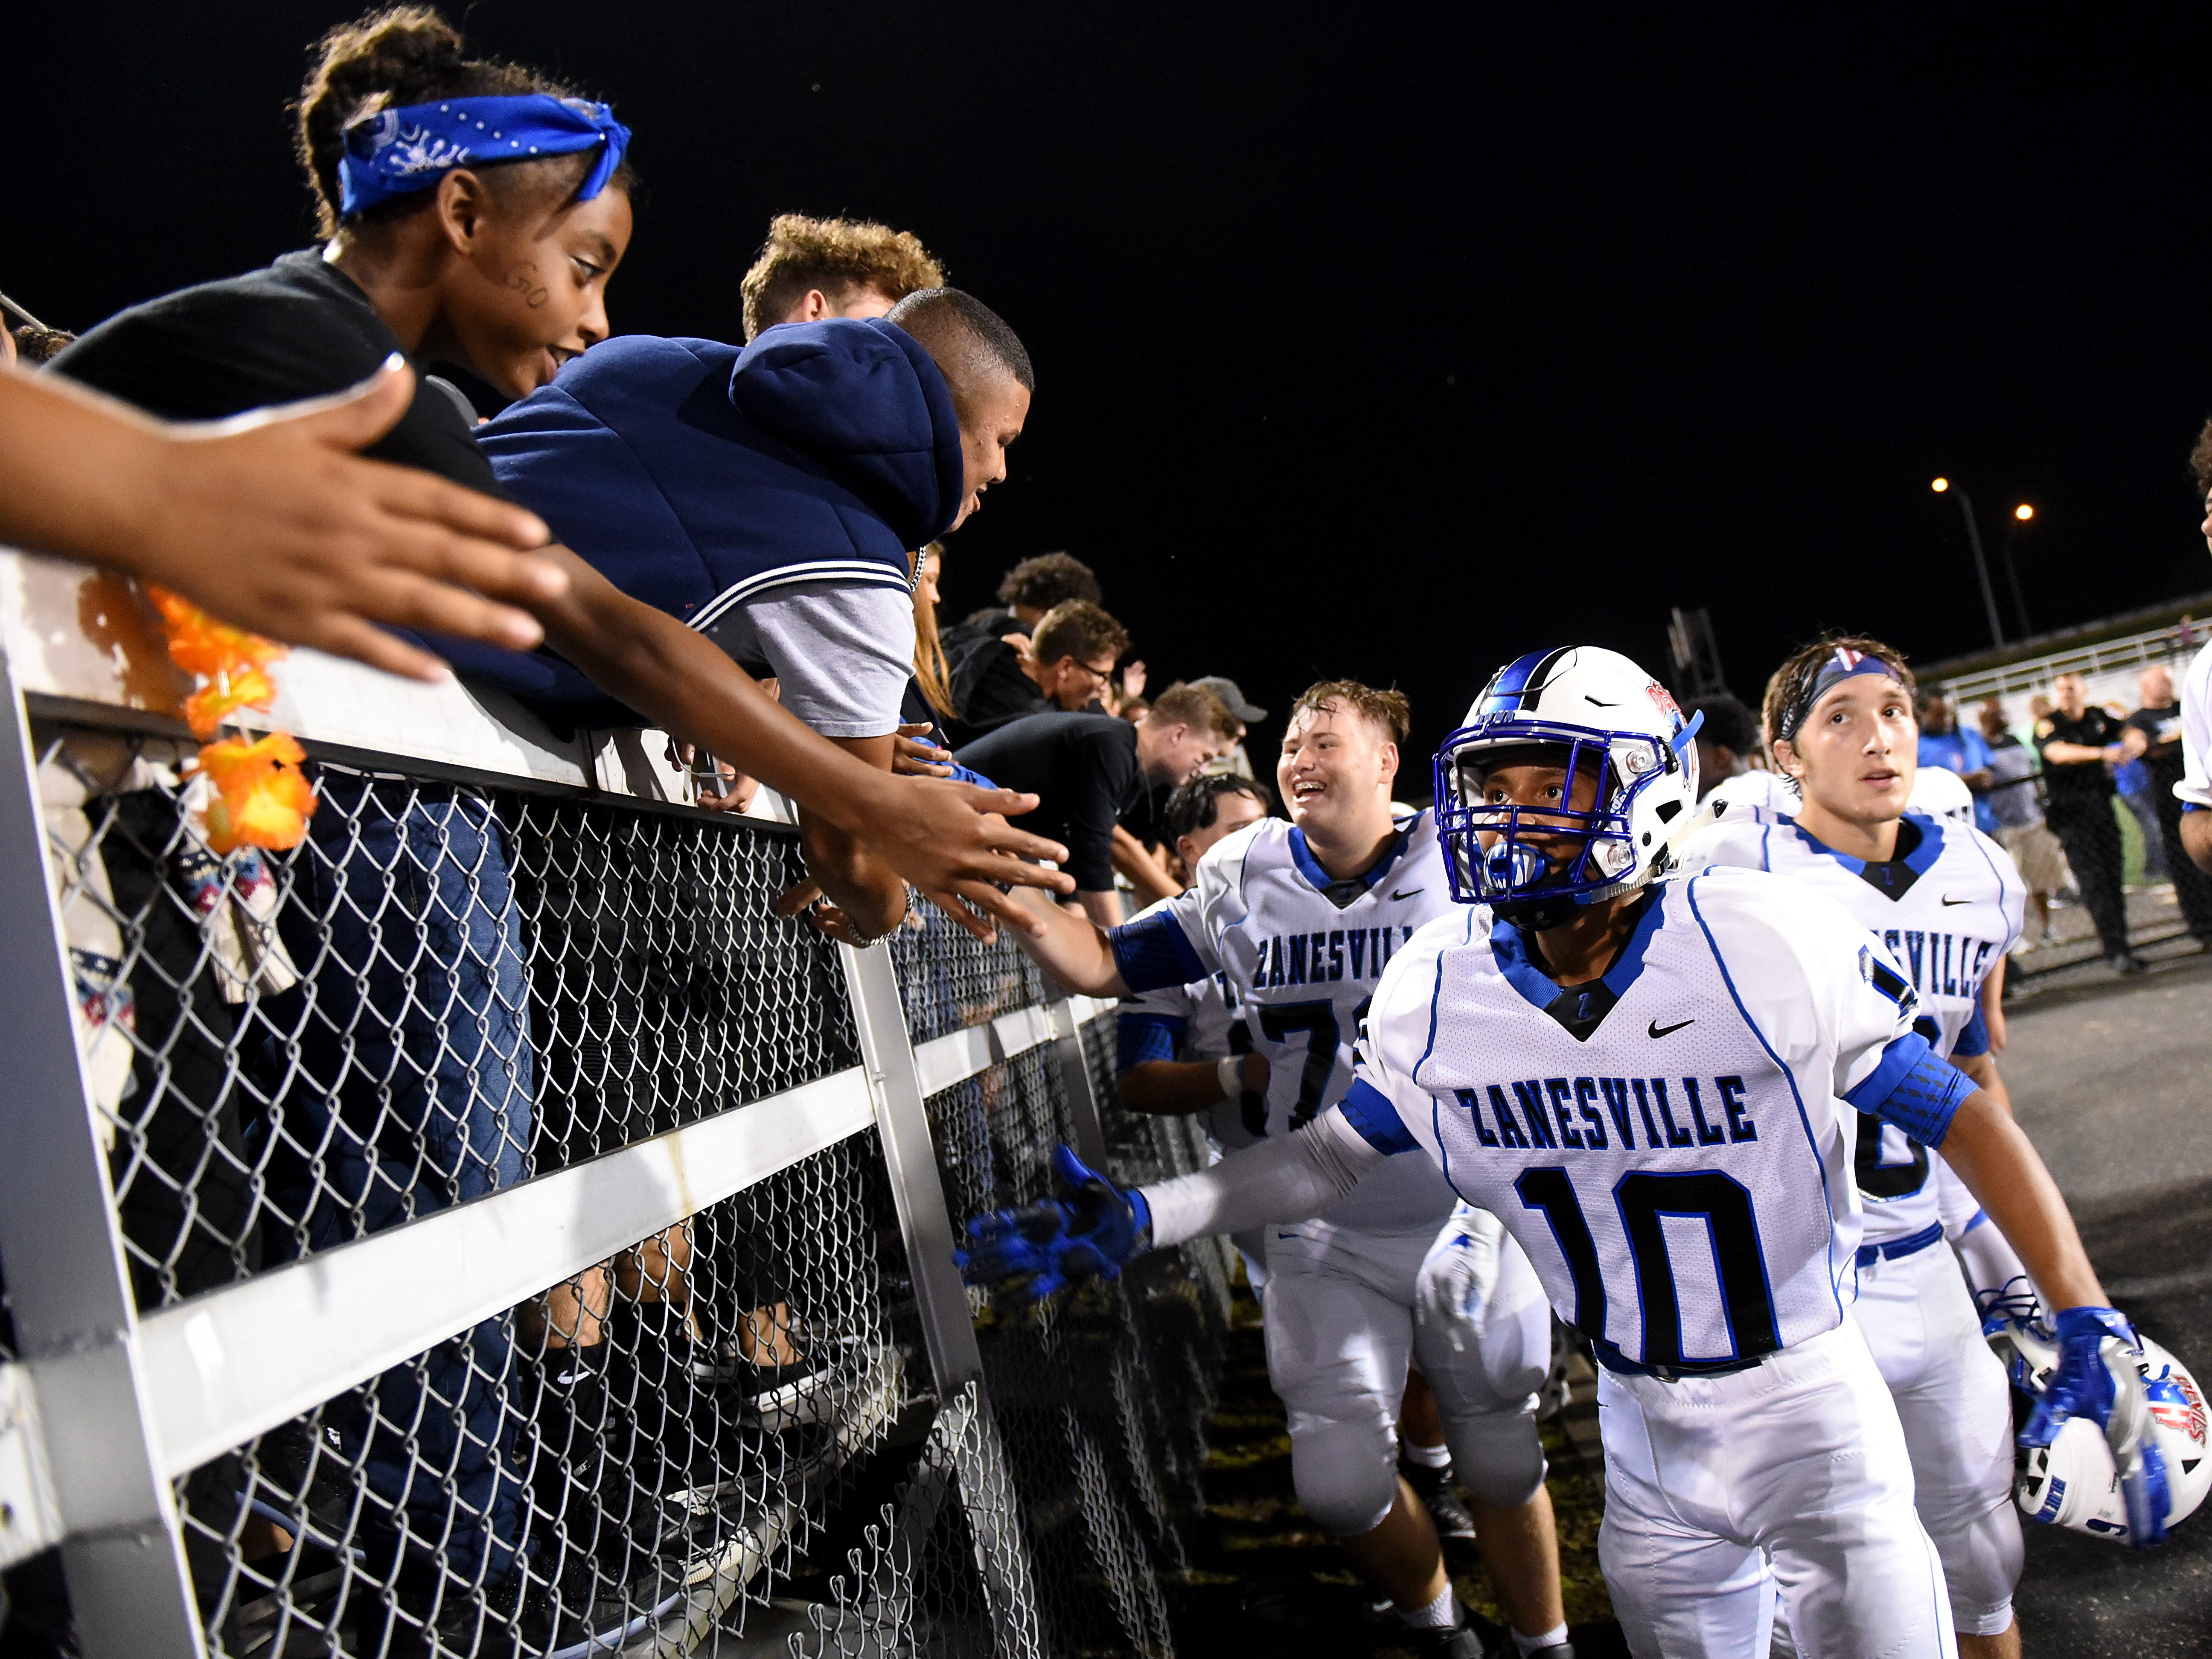 Zanesville junior Jeremiah Norman (right) high fives members of the student section after the Blue Devils' 32-27 against Newark on Friday, Aug. 24, 2018.